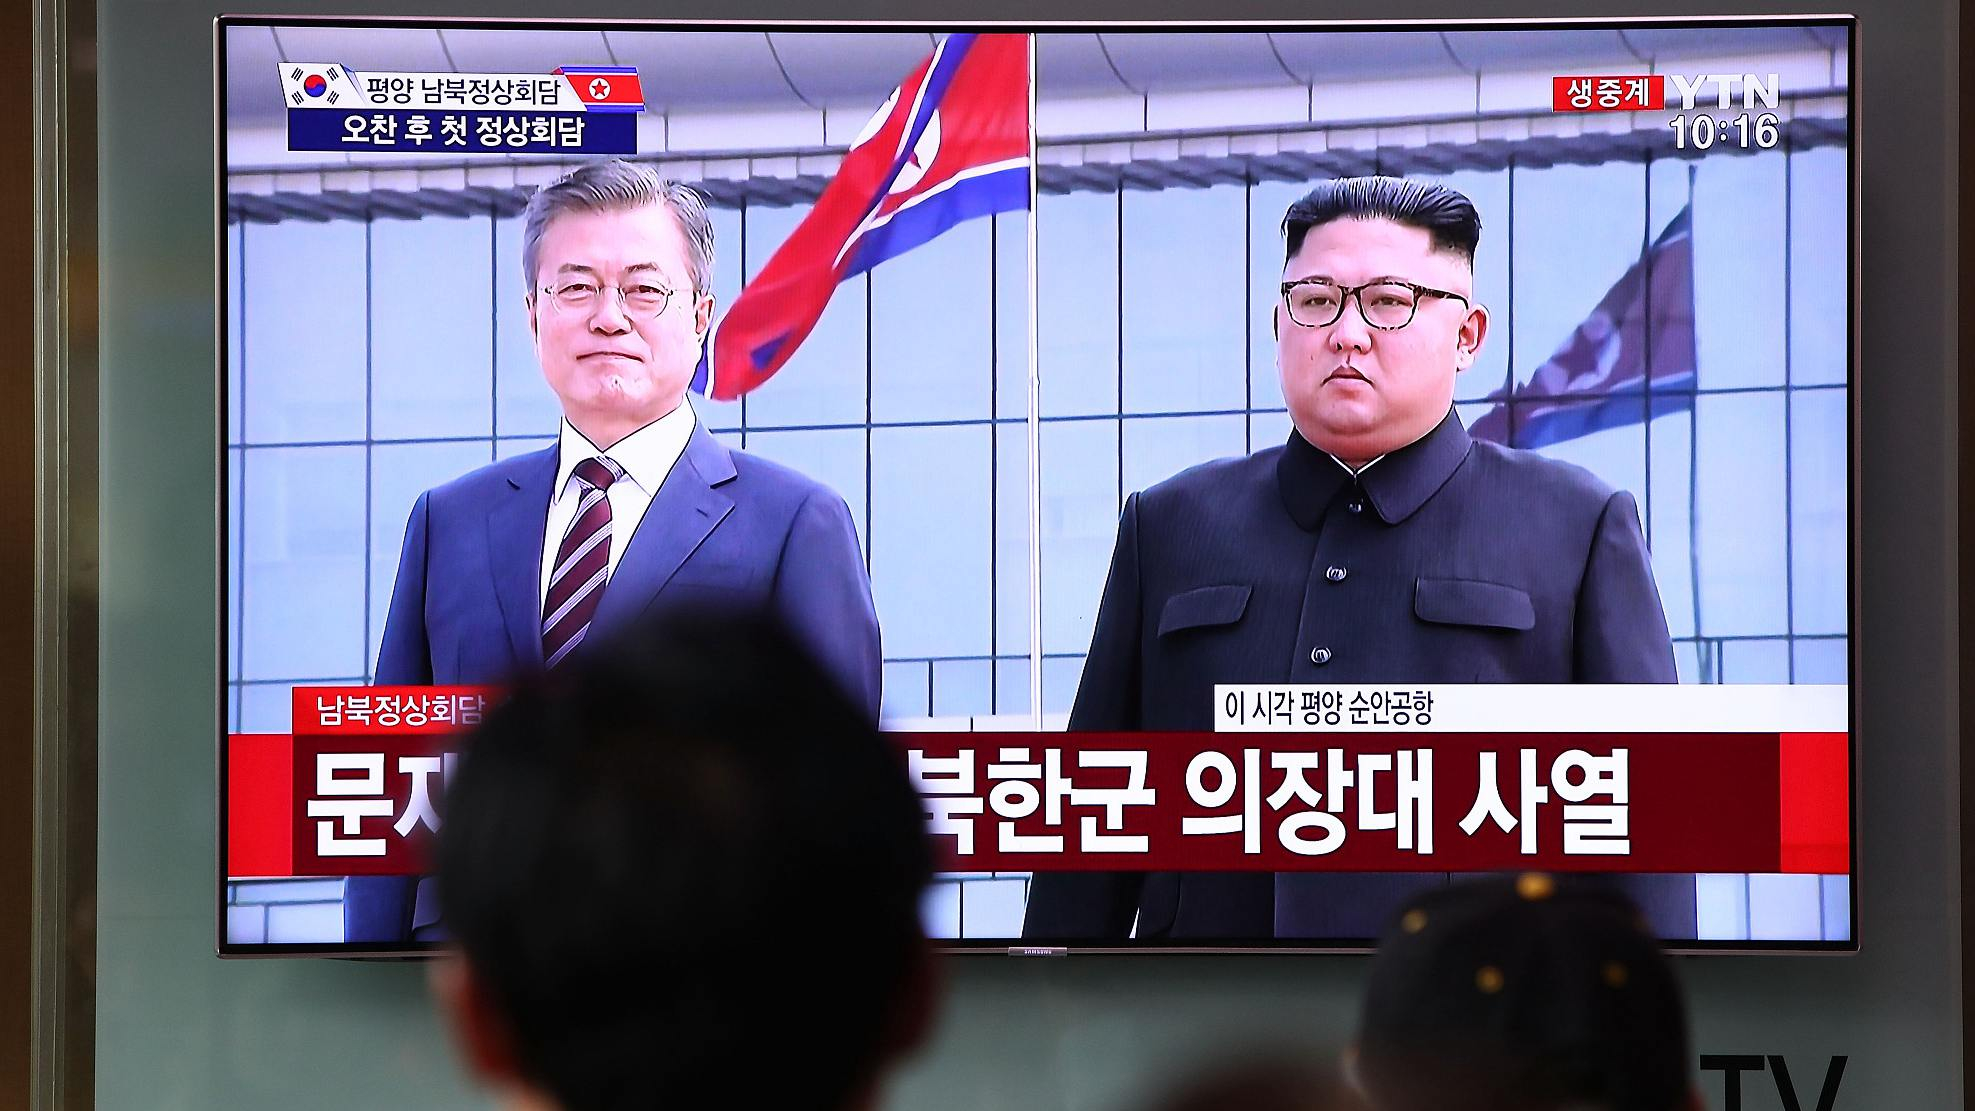 DPRK refuses S. Korea's offer to jointly celebrate centennial of independence movement against Japan